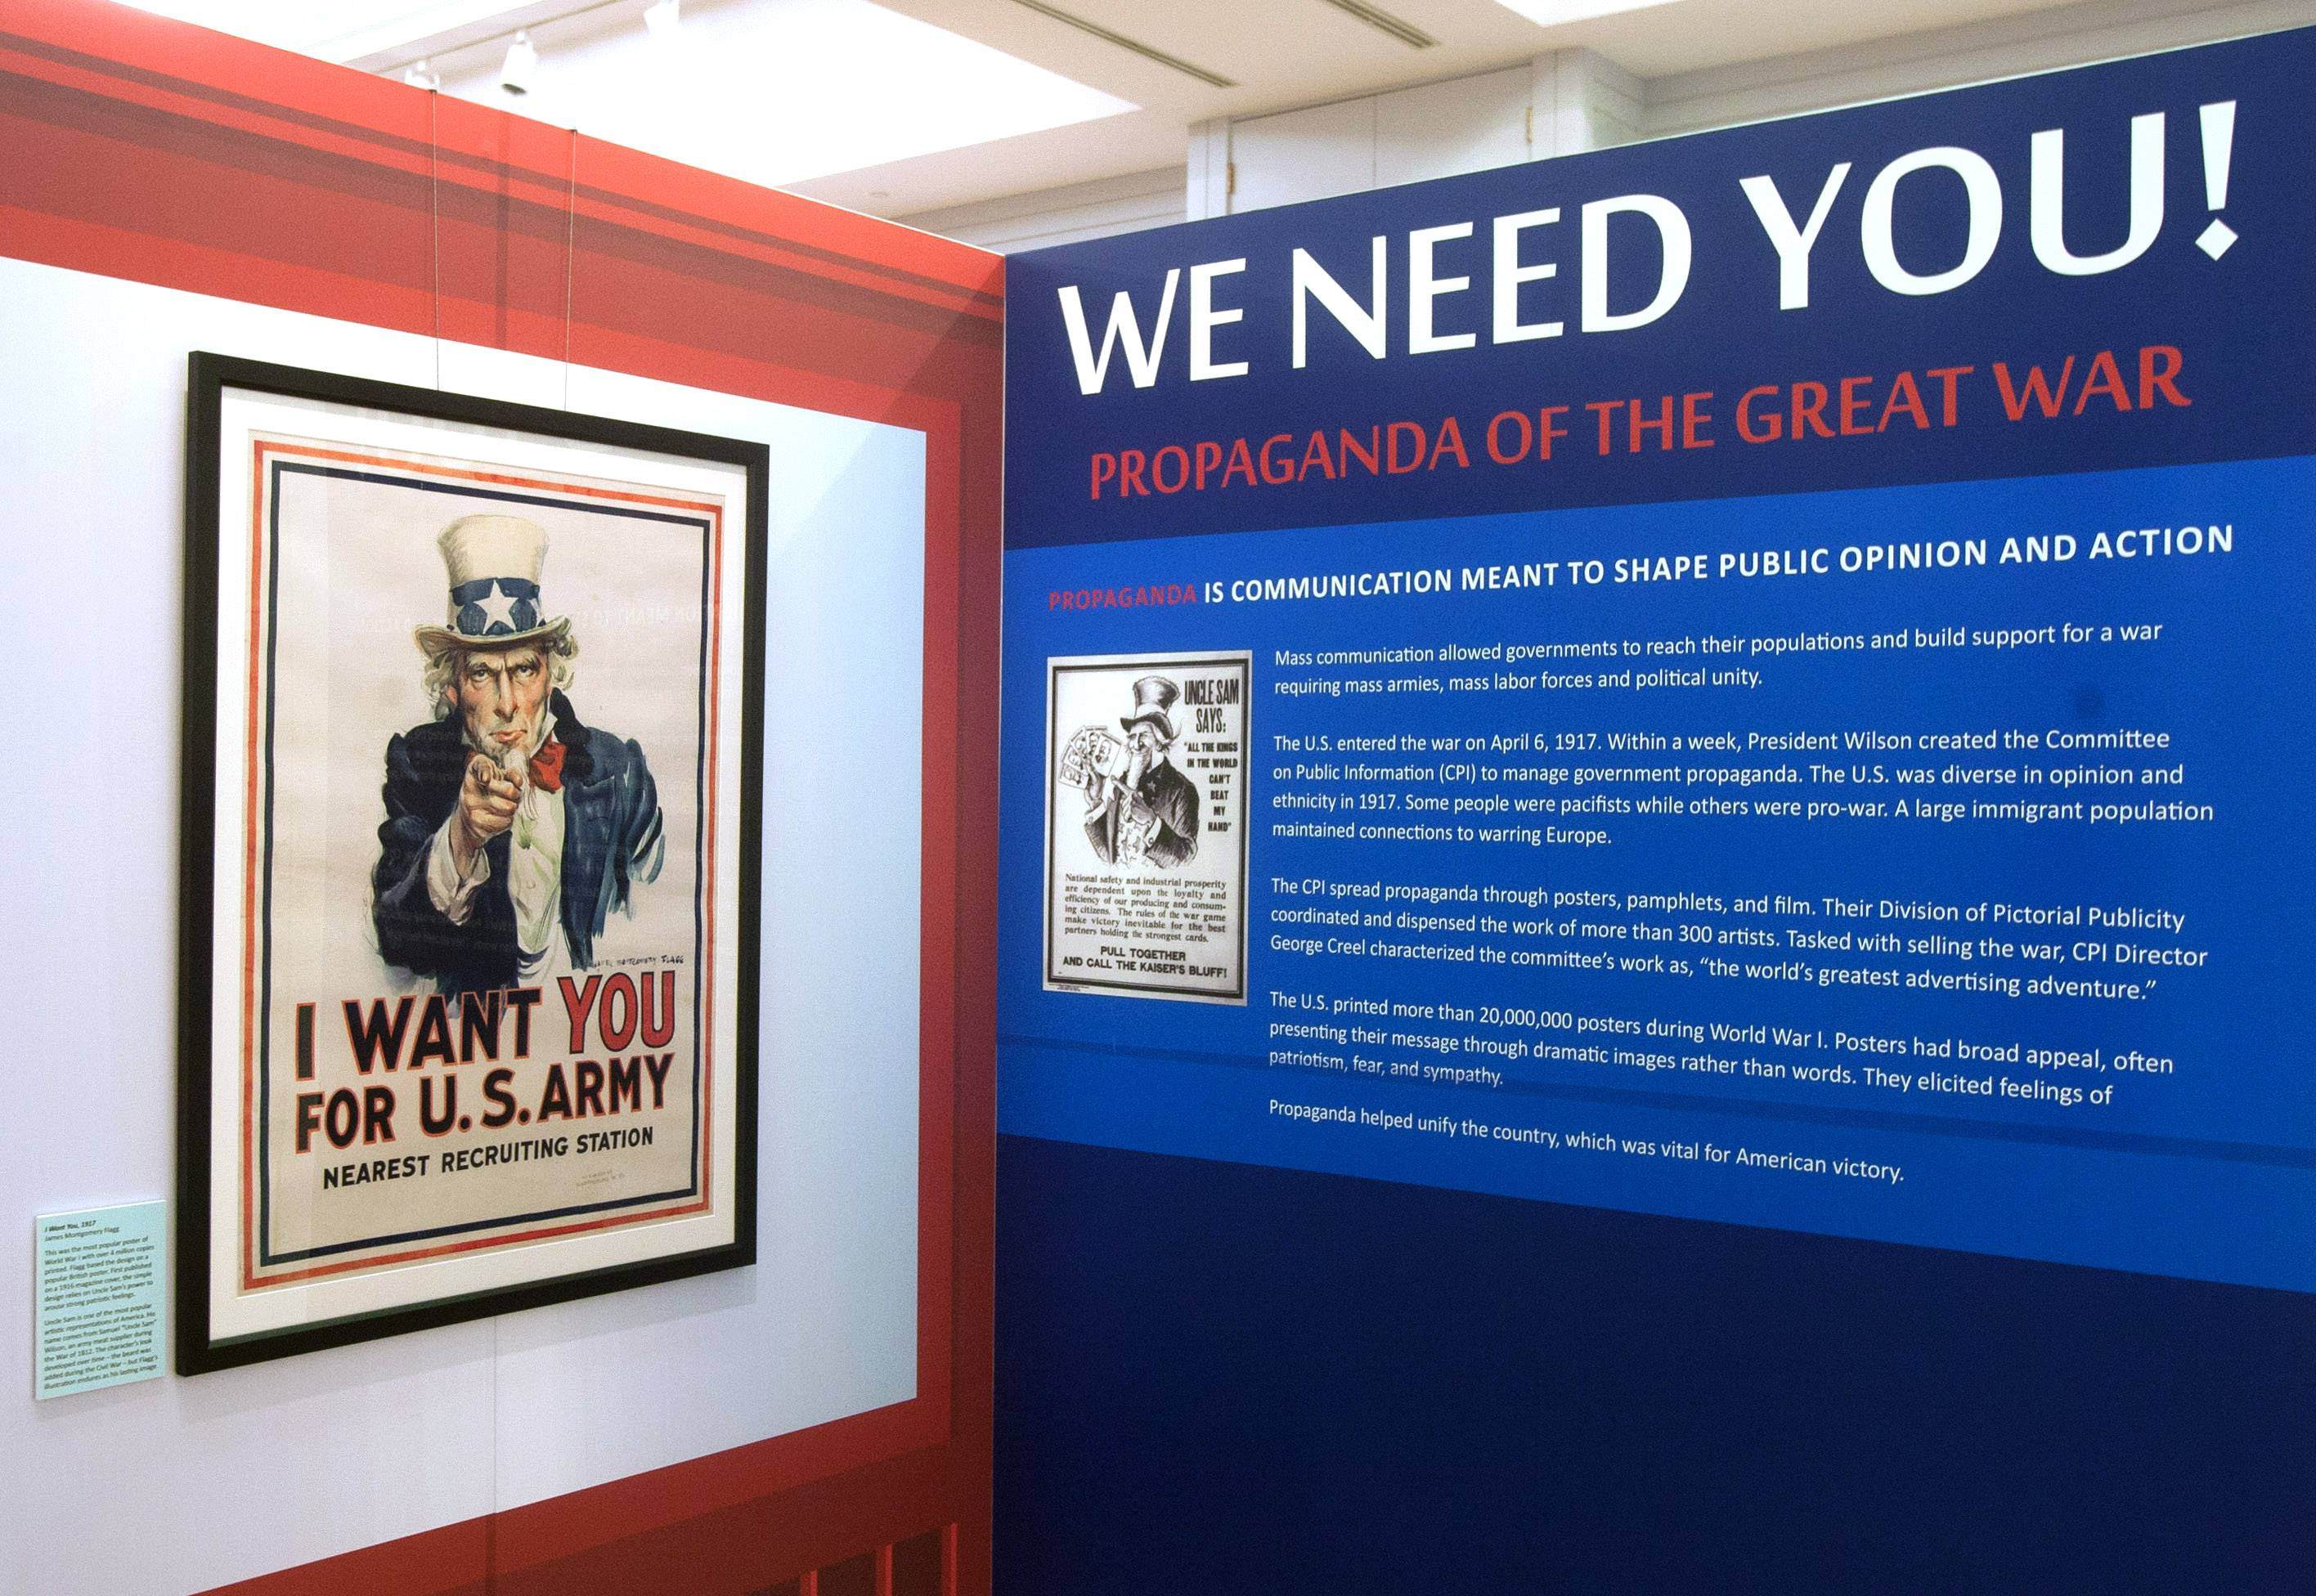 """WE NEED YOU! Propaganda of the Great War"" exhibit coincides with the 100th anniversary of the start of World War I in the summer of 2014. It runs through Nov. 2."